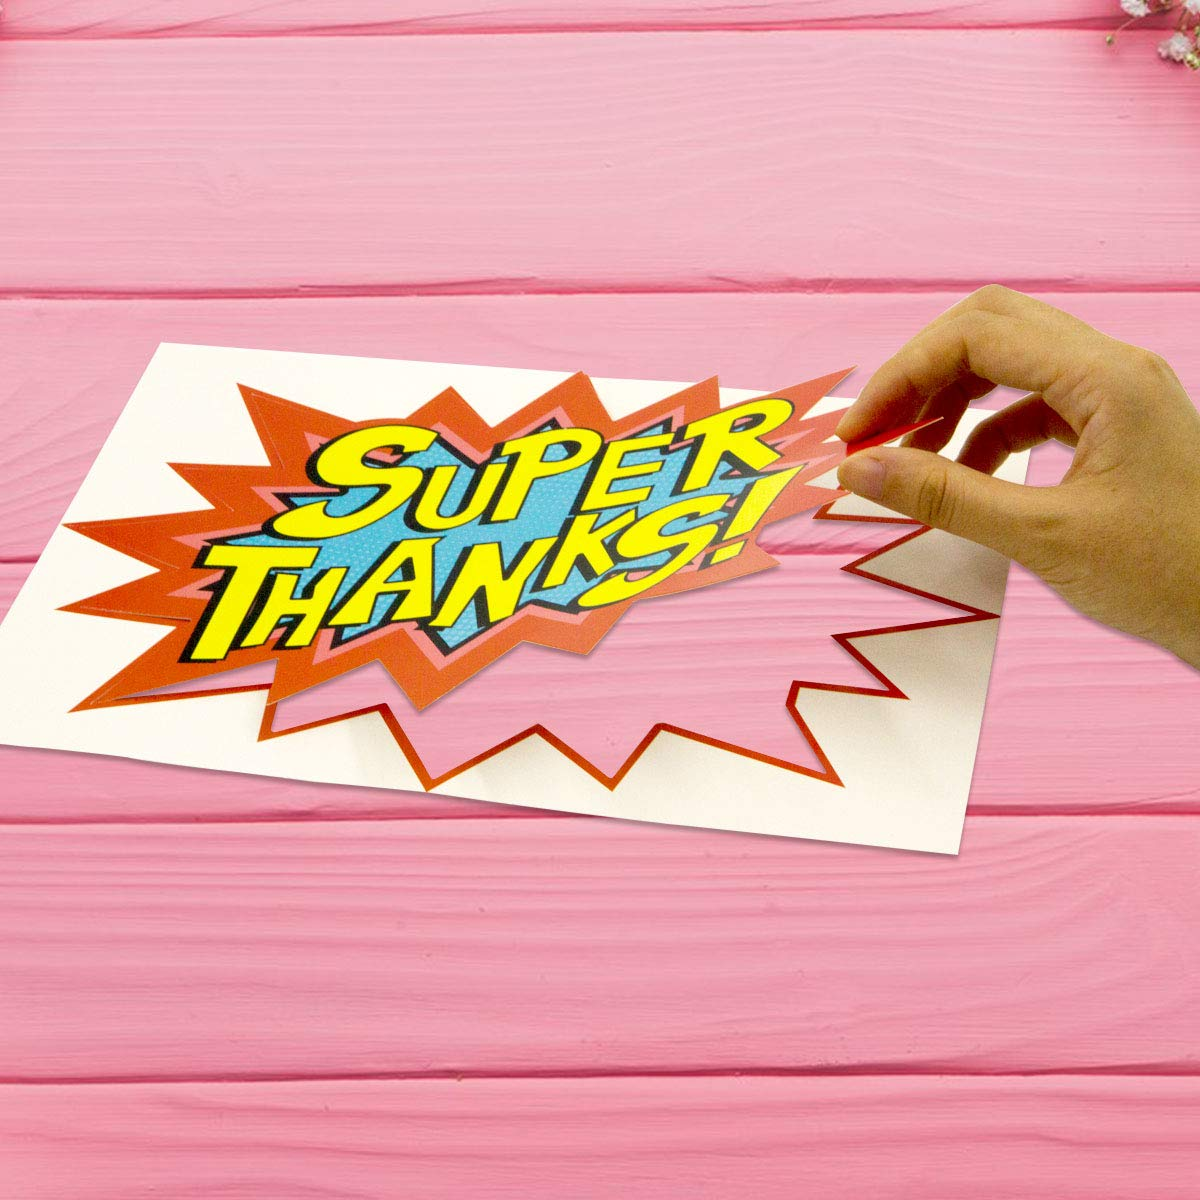 Large Superhero Action Signs Cutouts 12PCS Words and Cityscape Cut-Outs for Party Decoration by Fancy Land (Image #3)